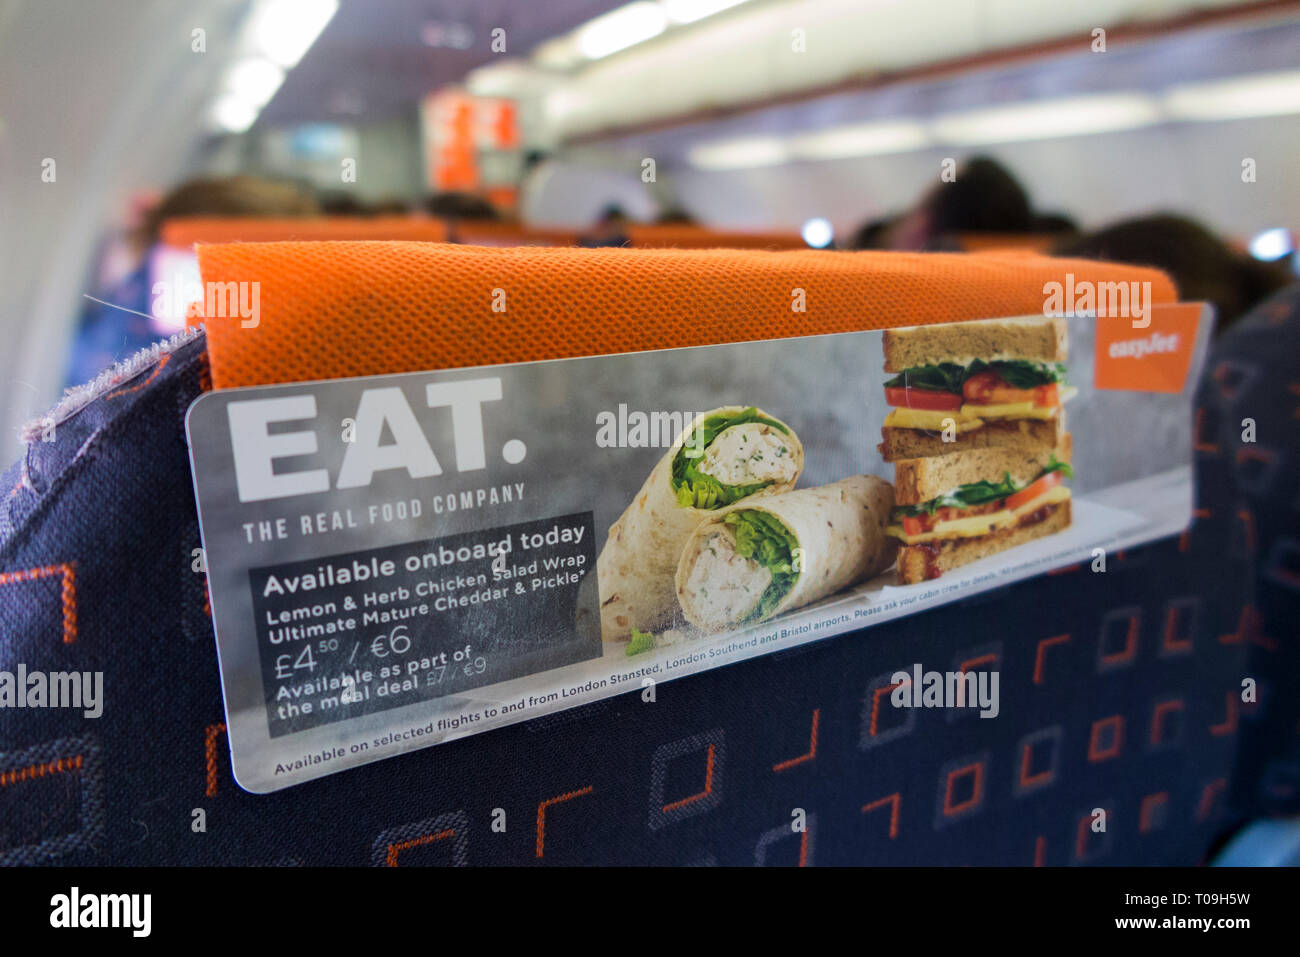 Seat back headrest / head rest / in flight advertising advert promotion for airline snackfood sandwich wrap / wraps for sale to passengers who can buy them on an Easyjet flight. (104) - Stock Image